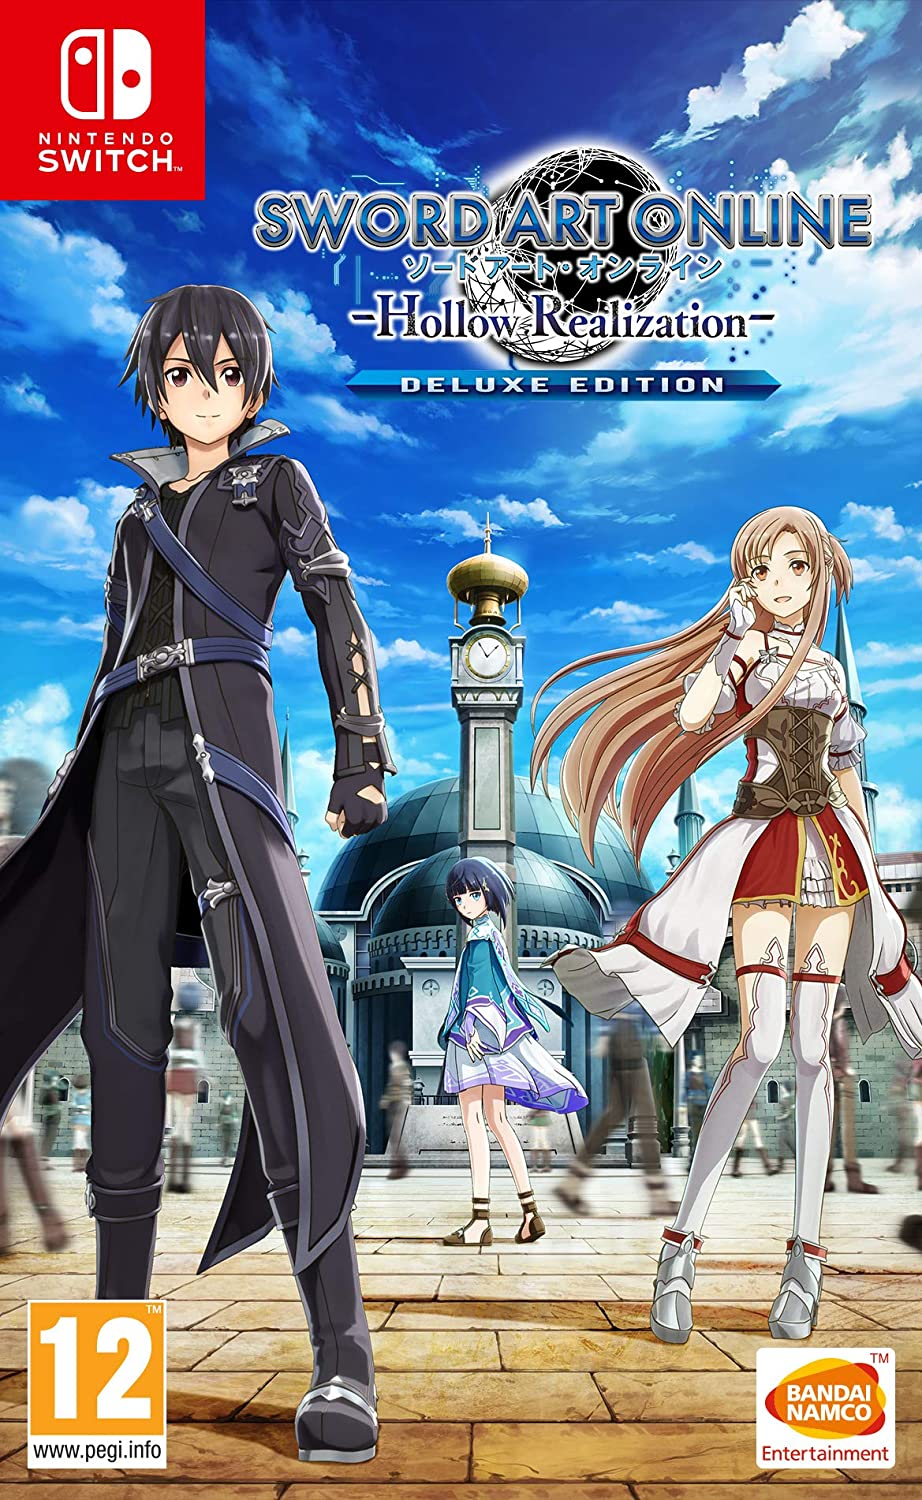 Sword Art Online: Hollow Realization [SWITCH] : Deluxe Edition | Bandai Namco Entertainment